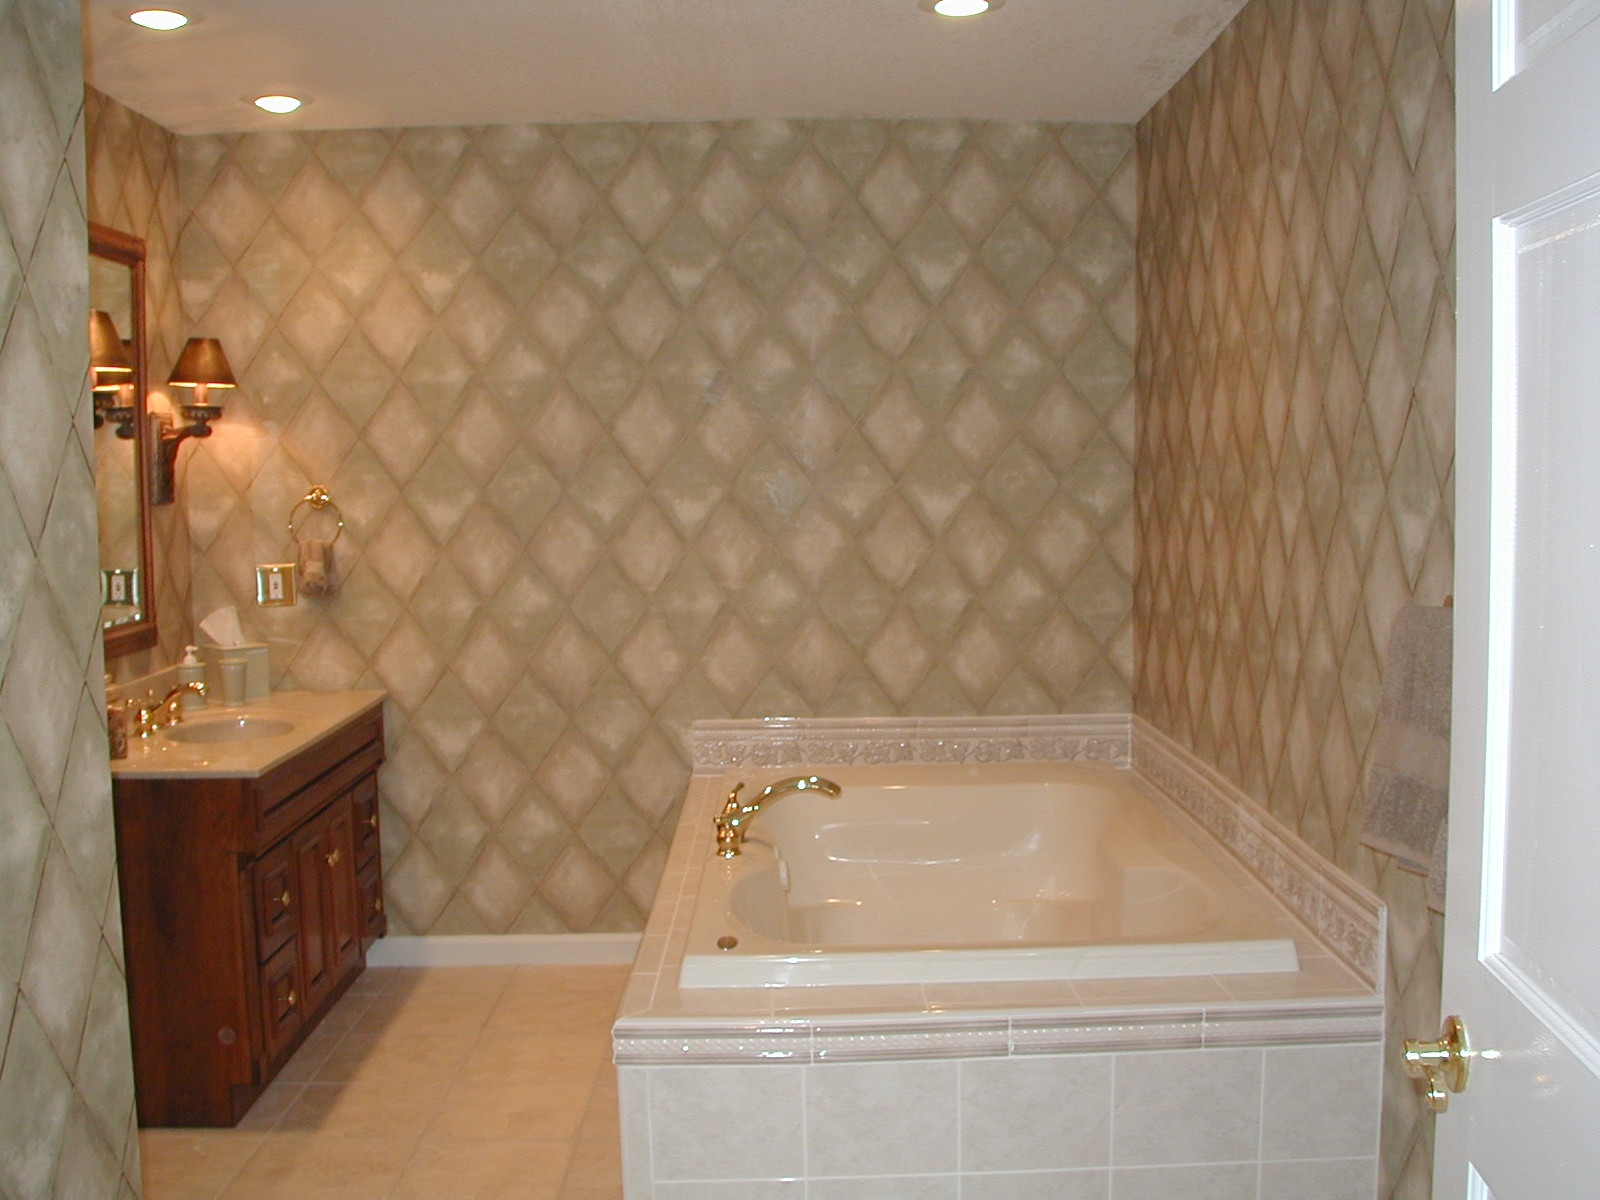 Square White Mosaic Bathroom Floor Tile Ideas (View 1 of 10)